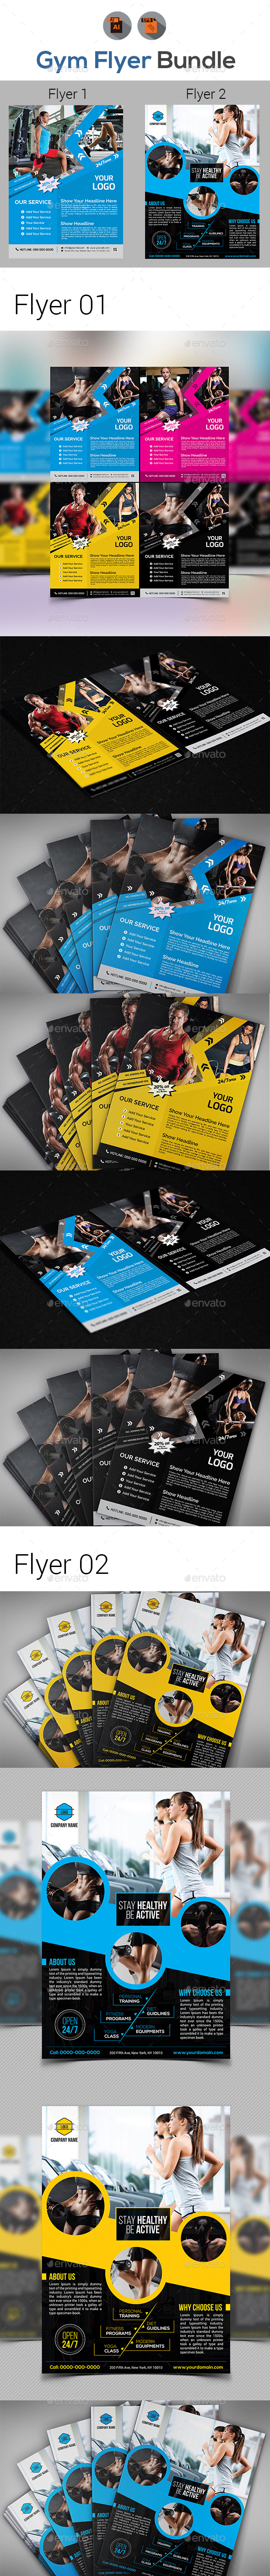 Fitness Flyers - Corporate Flyers